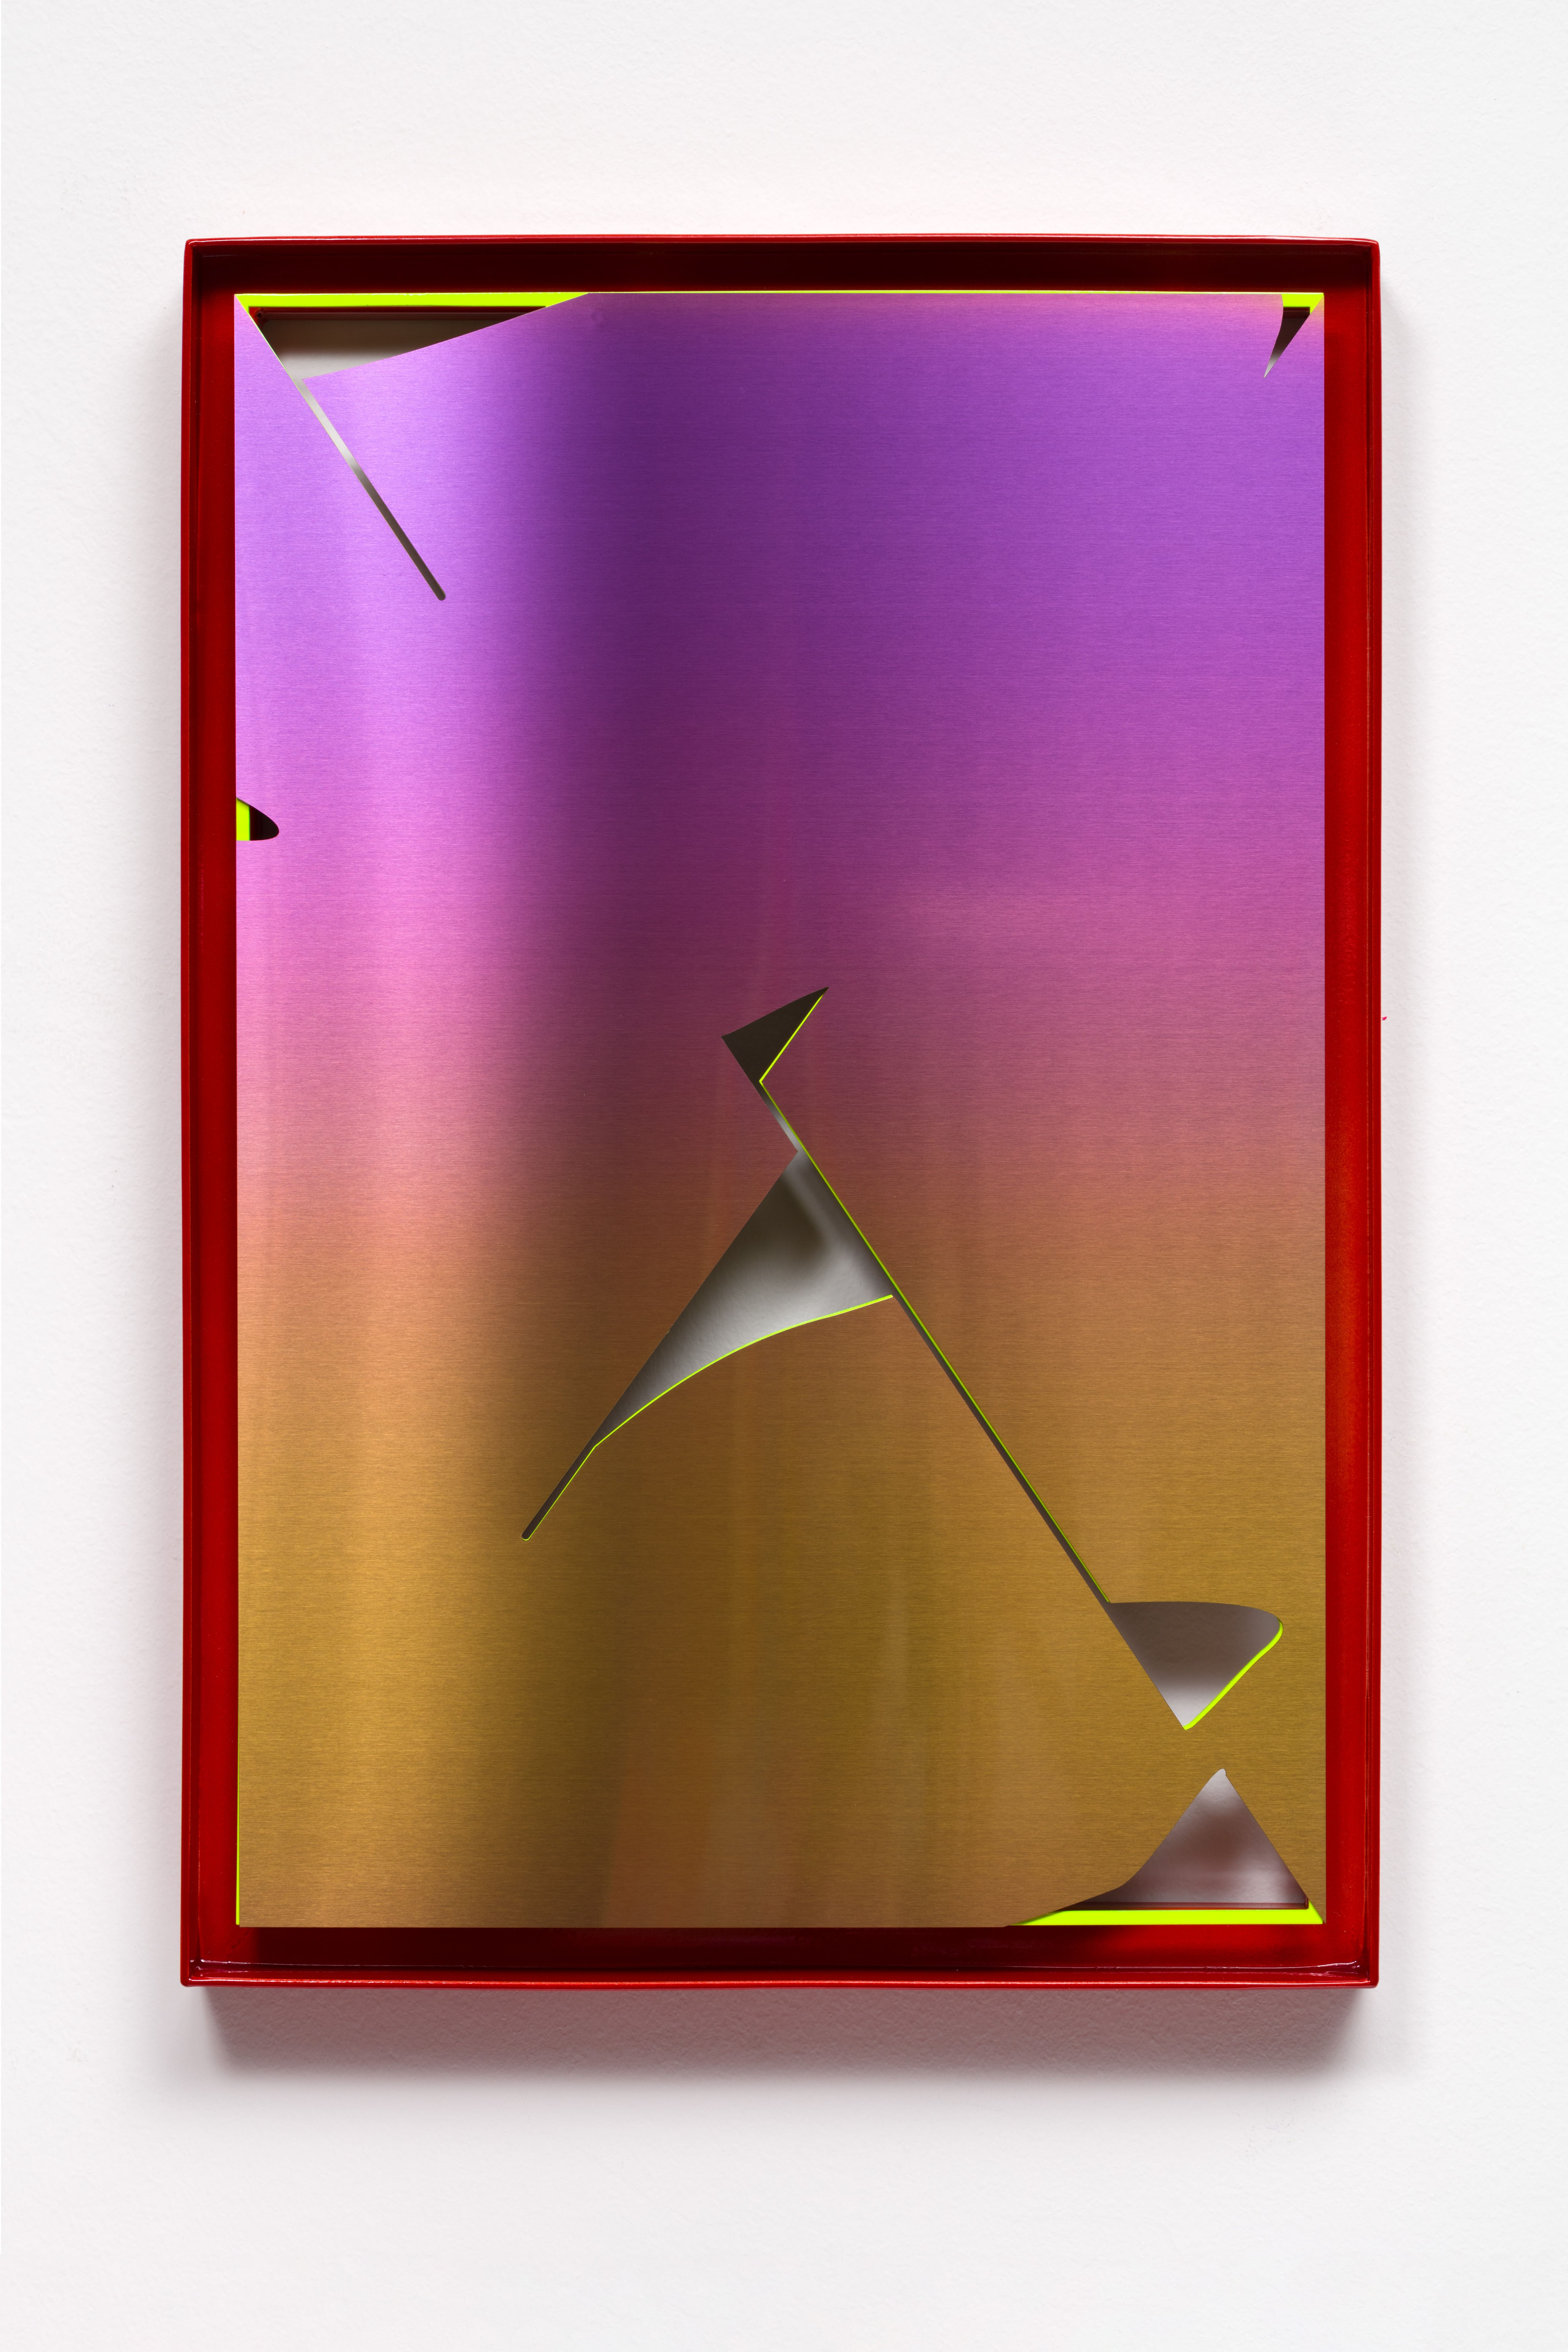 NemesM_Small-void-02_2021_65x45cm_PVD-coated-stainless-steel-powder-coated-stainless-steel-min